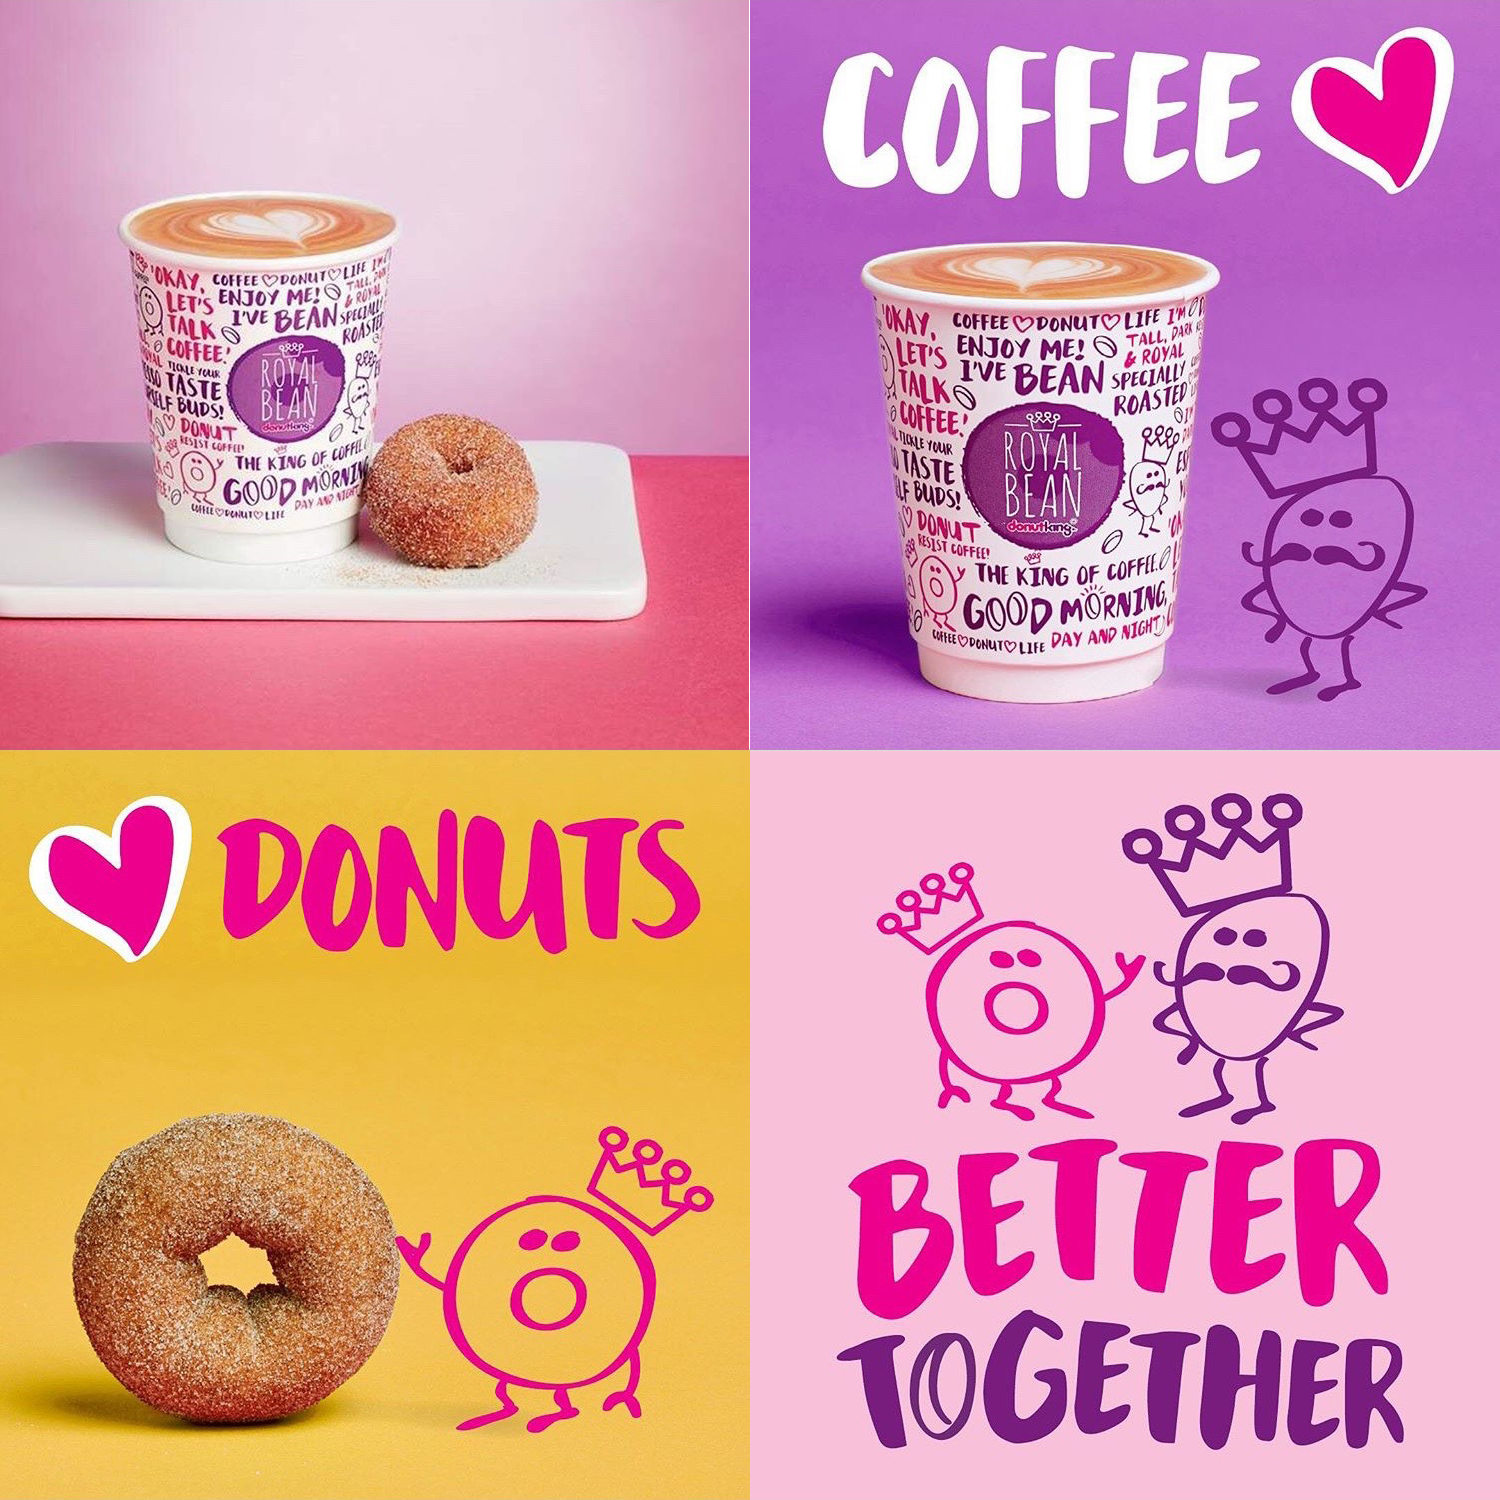 Mix Brush on Donut King's Ads and Coffee Cups